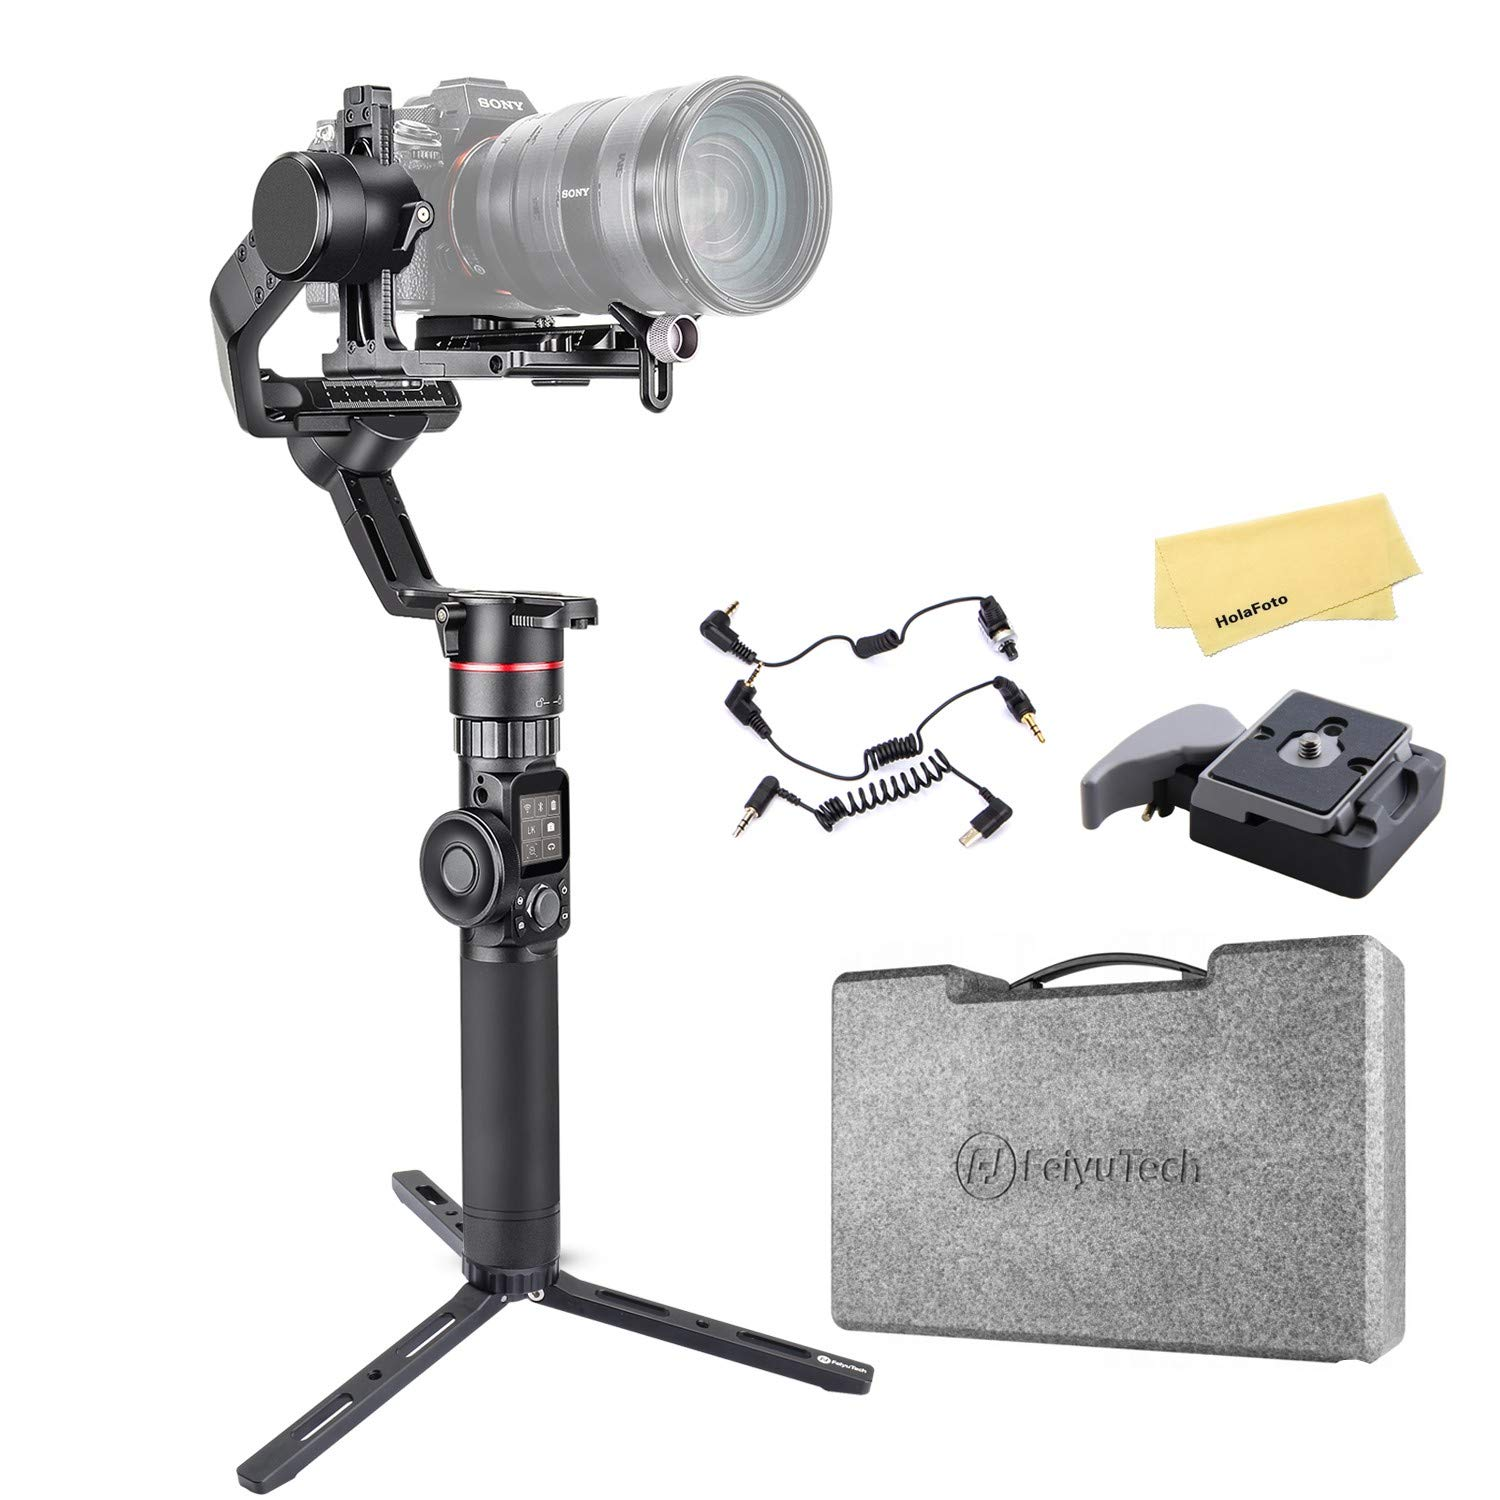 Feiyu AK2000 3 Axis Gimbal Stabilizer for Sony a9 a7 ii a6500 Series Canon 5D Panasonic GH5 GH4 Nikon D850 Mirrorless and DSLR Digital Camera, Smart Touch Panel WiFi Bluetooth Connection 2.8kg Payload by FeiyuTech